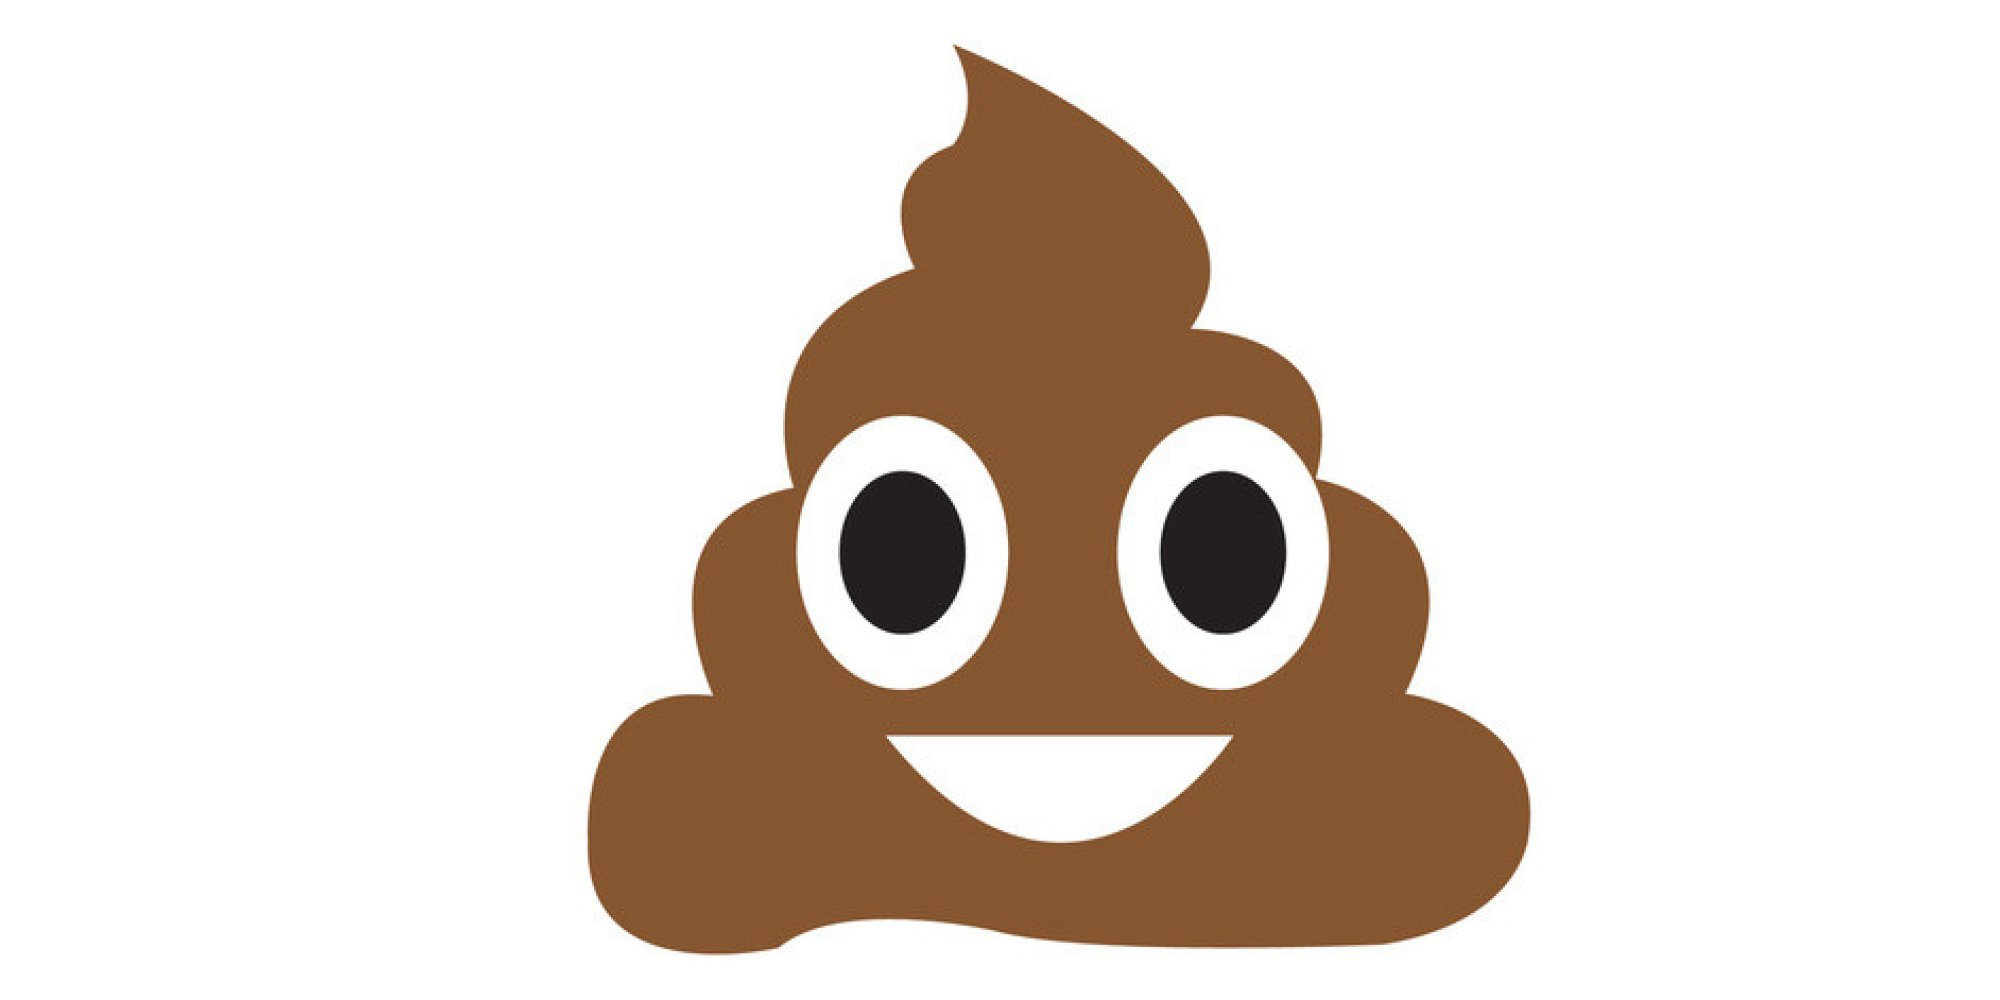 Dog poop clip art - WikiClipArt